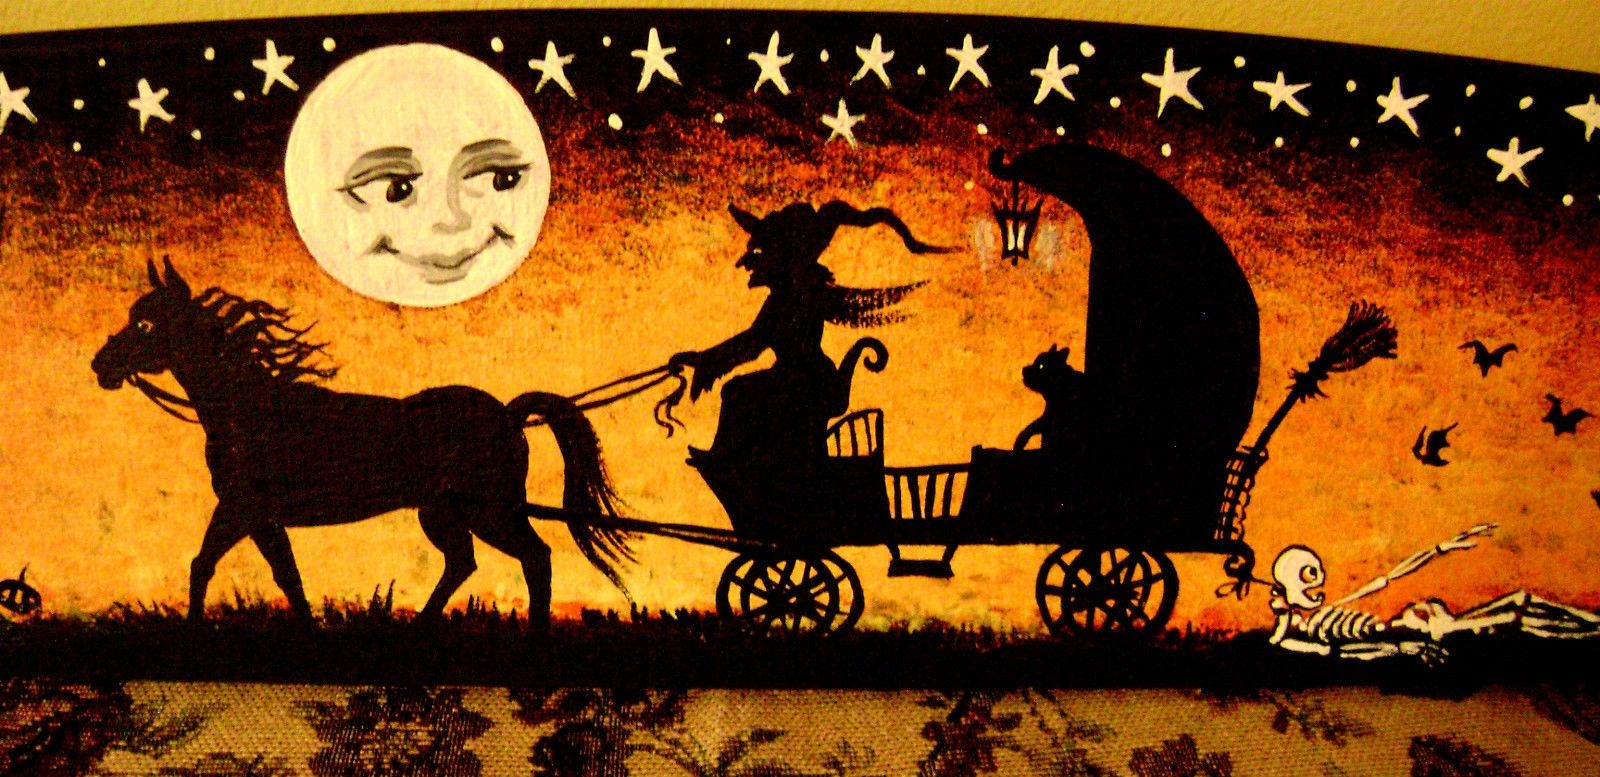 809639010 Vintage Halloween Wallpaper4 Jpg 1600 777 Vintage Halloween Art Halloween Desktop Wallpaper Halloween Wallpaper